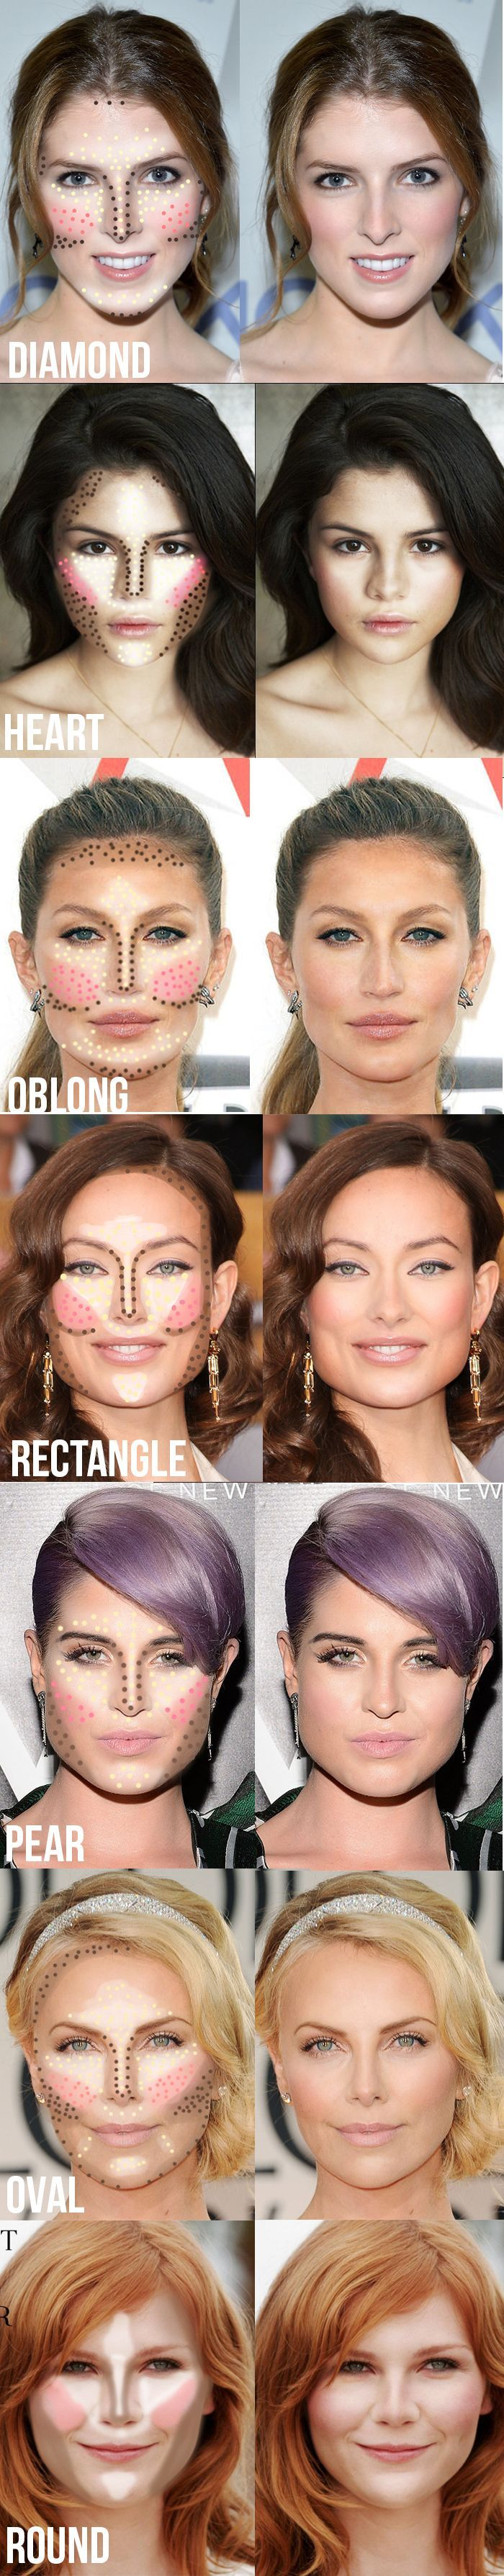 Contouring and Highlighting guide for your face shape